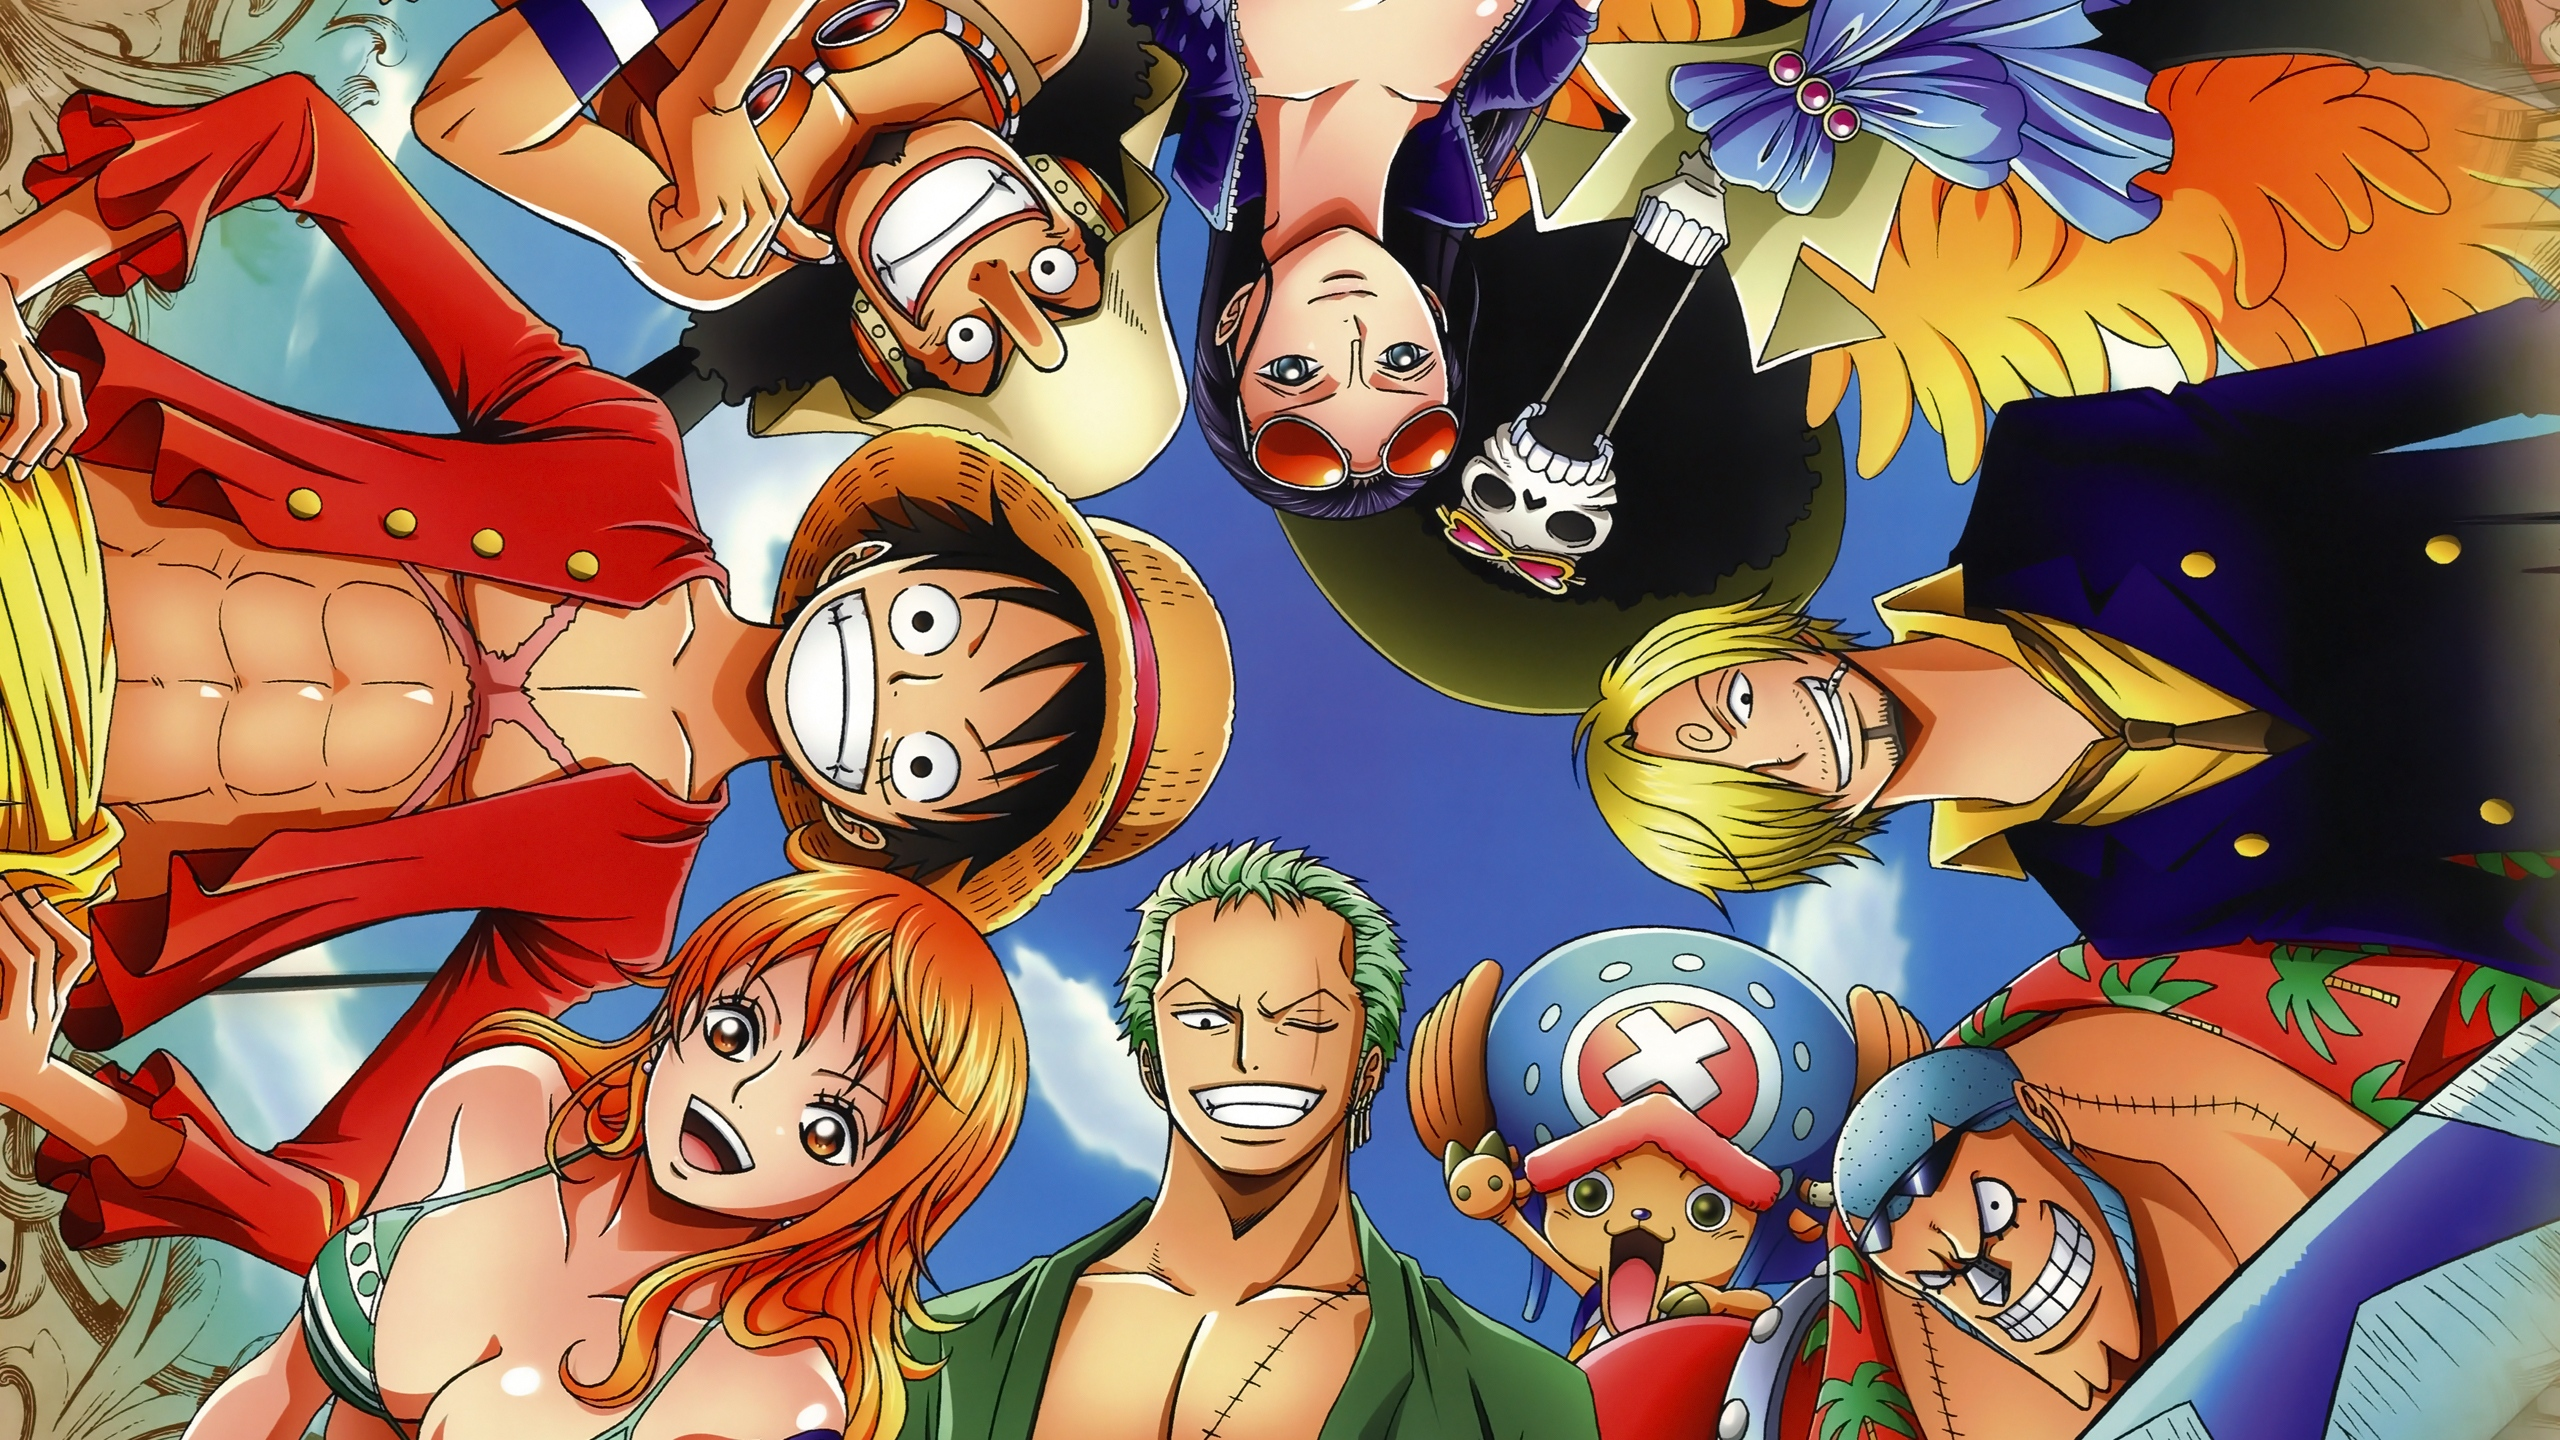 hd wallpaper background id606284 2560x1440 anime one piece